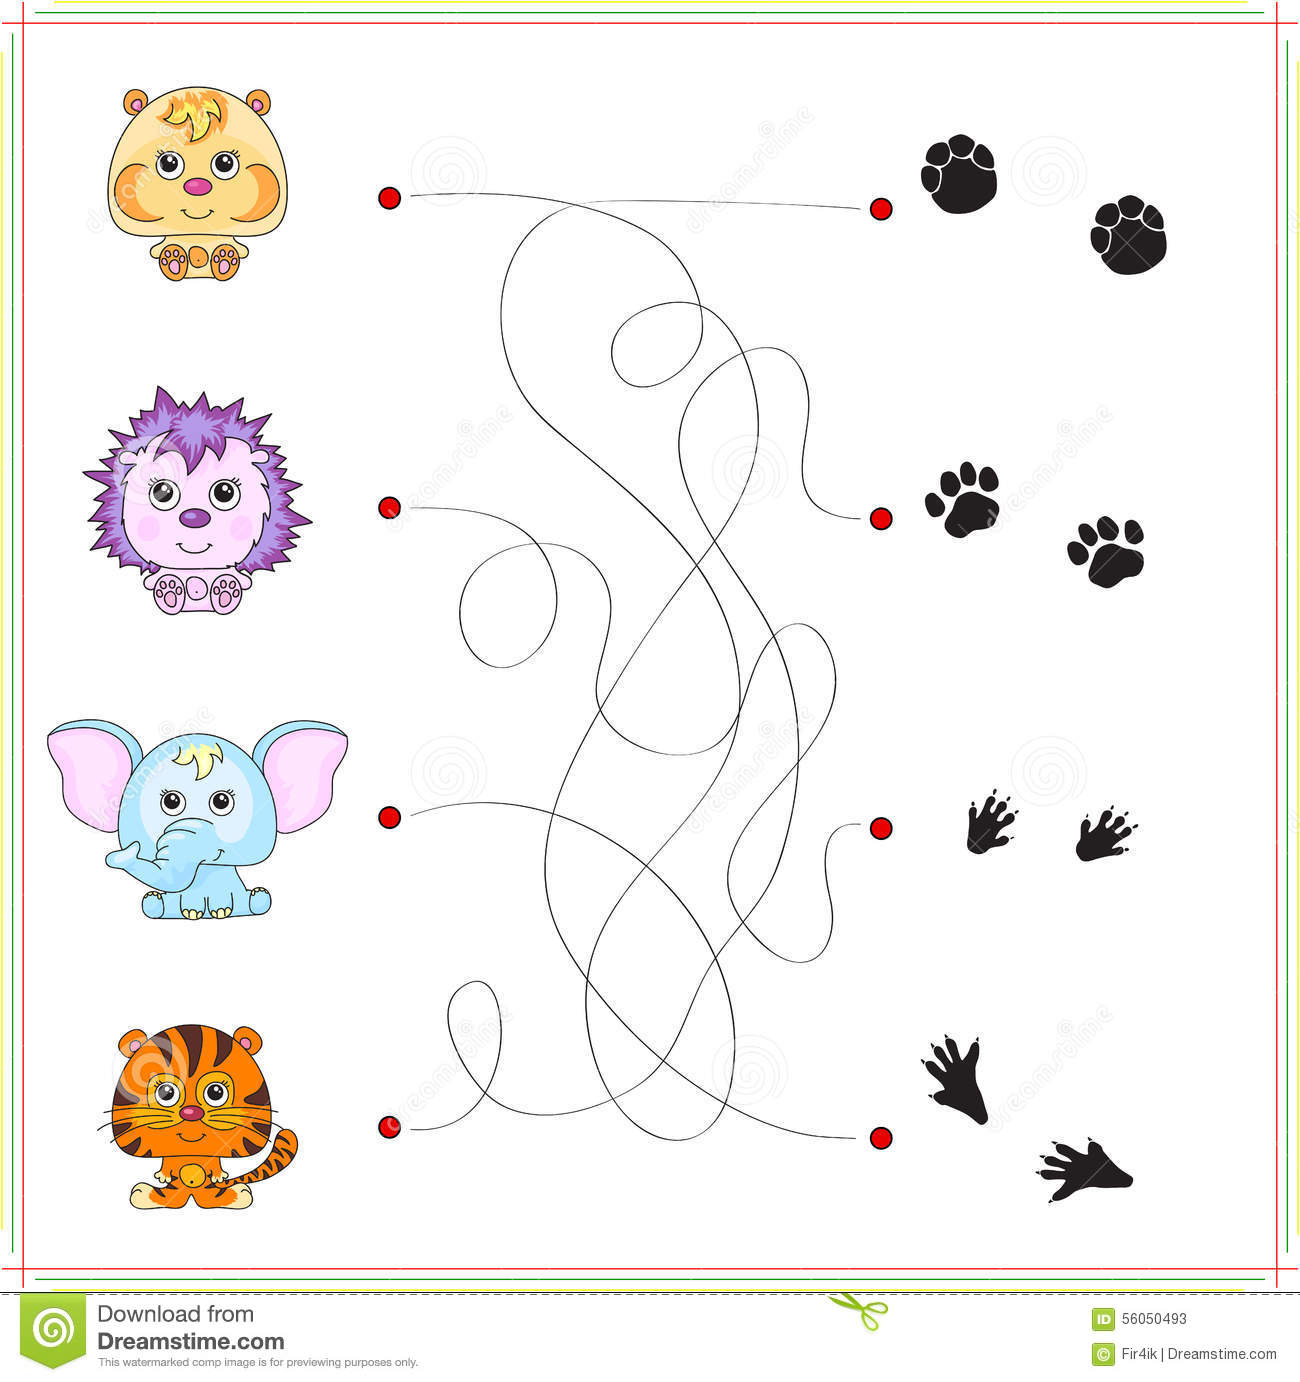 hamster hedgehog elephant and tiger with their traces of foot